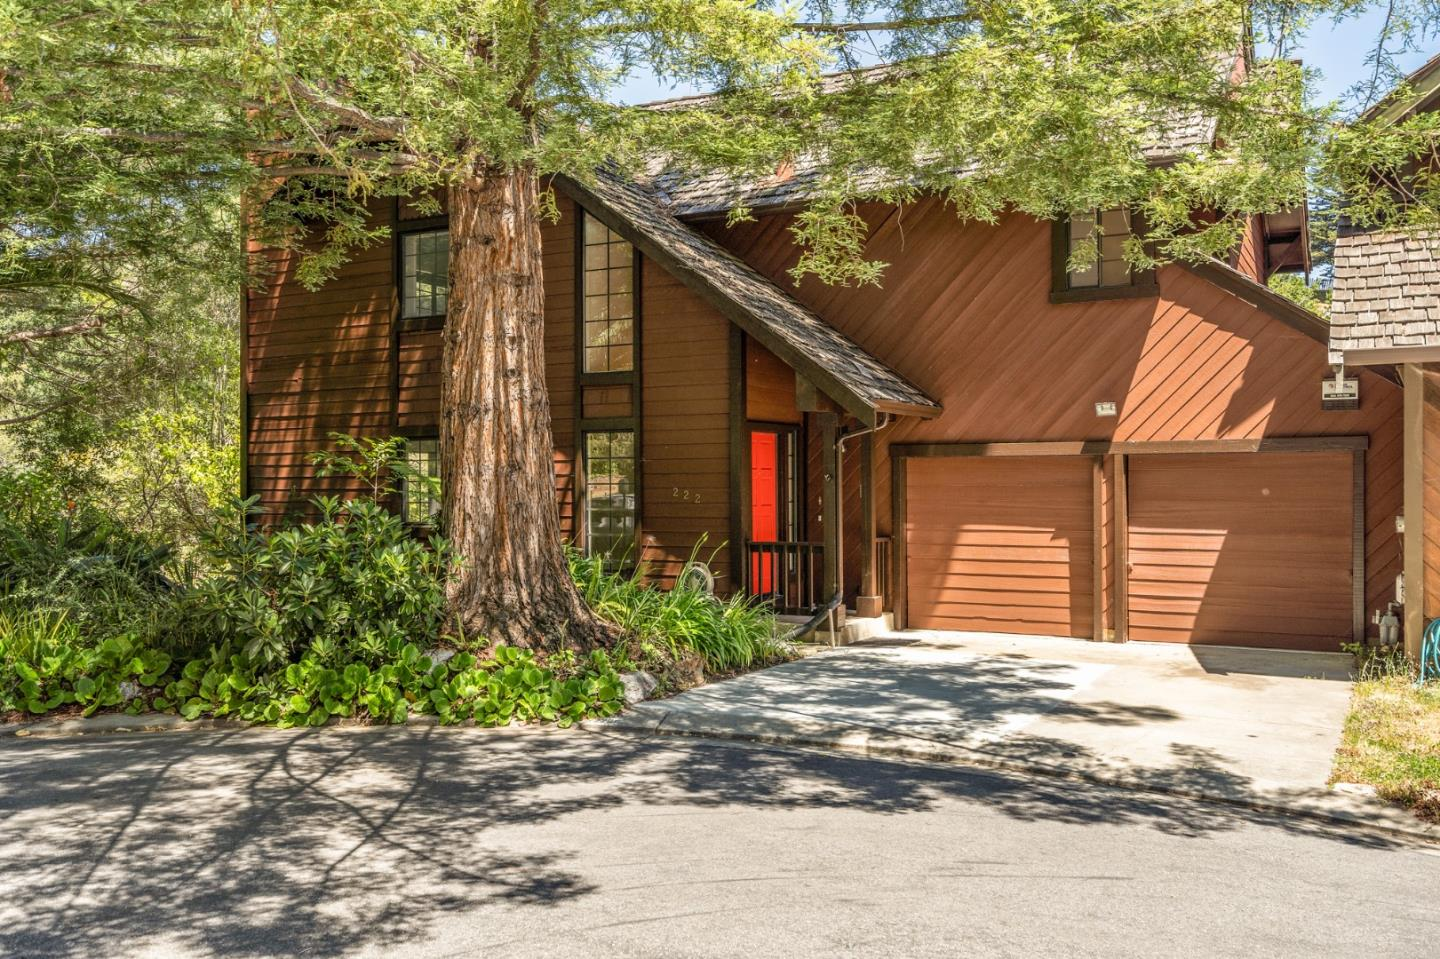 Once in a lifetime opportunity to own this exclusive retreat tucked away in nature on the Upper Westside! This unique property is located at the end of a private cul-de-sac, surrounded by nature on three sides. This home features new vinyl plank flooring, fixtures, carpet, interior and exterior paint. Located in the highly desirable Westlake School District, Westlake School and Park are just a 15-minute walk away. A private path leading directly to UCSC is just steps as is Natural Bridges State Beach, West Cliff Drive, Highway 1 bike path, and Wilder Ranch trails are all nearby, along with many Westside restaurants, breweries, and stores, including Humble Sea, West End Tap and Kitchen, Bantam, Verve and Cat and Cloud Coffee Shops, Santa Cruz Mountain Brewing, and Cameron Marks. Check out a Jump bike to explore other Westside areas such as the UCSC Arboretum, Derby Skate Park or the Santa Cruz Surfer Museum. A must see!